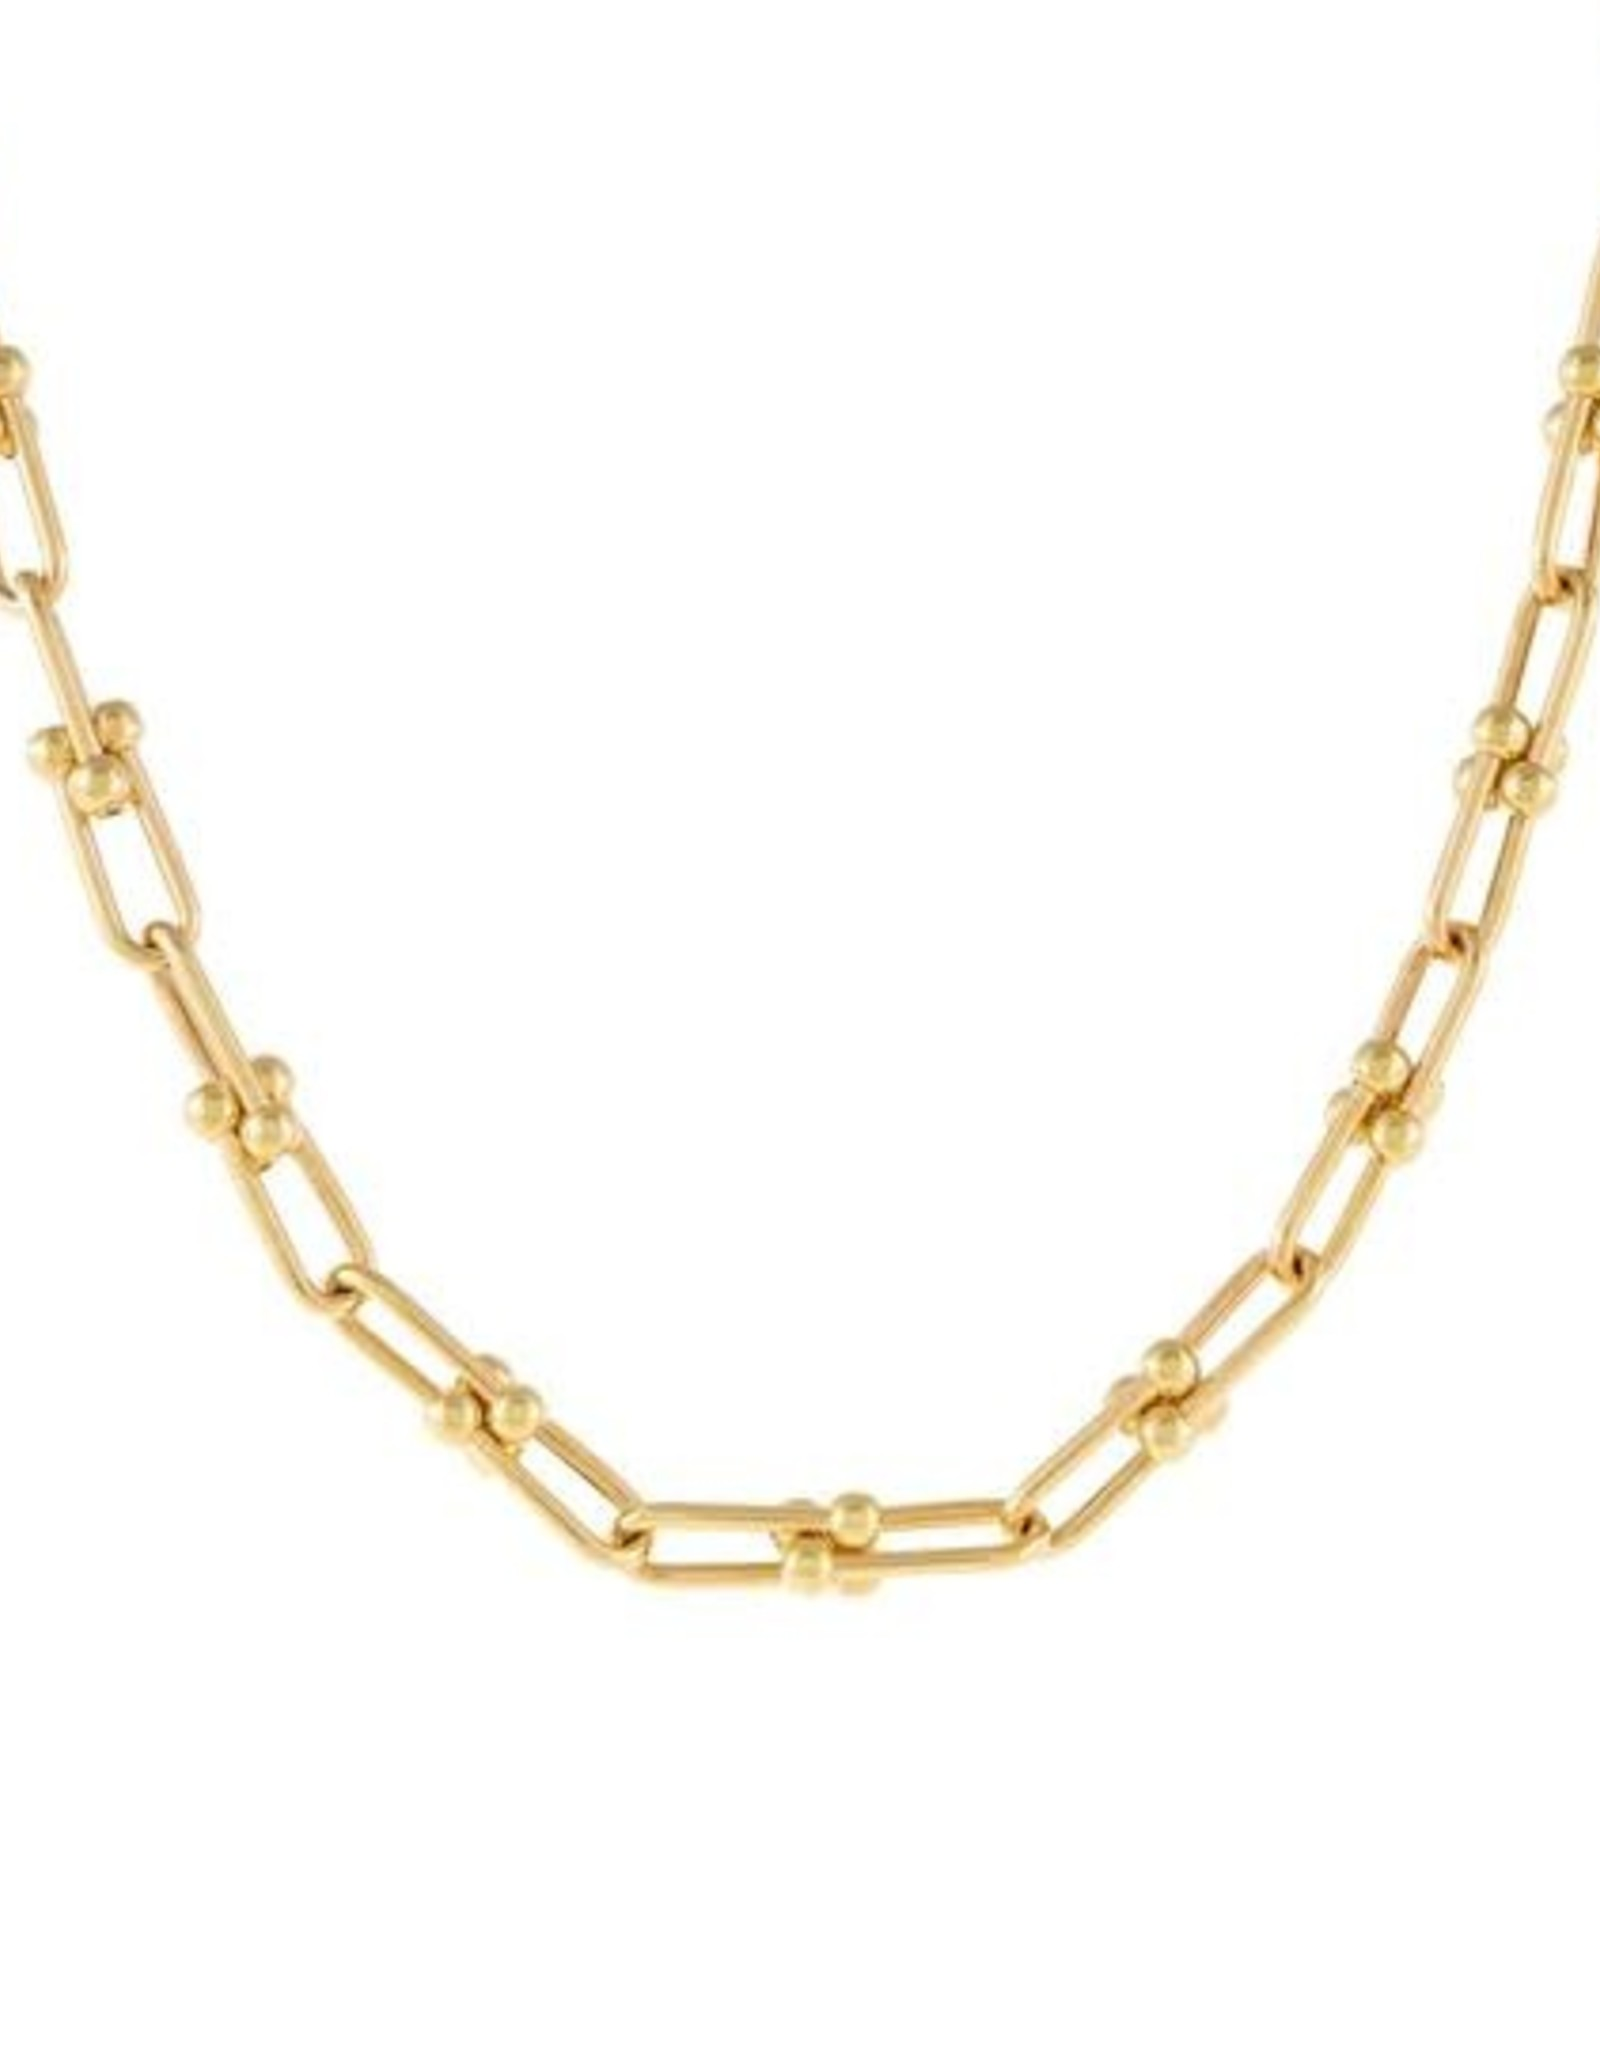 Adinas U Chain Necklace 14K